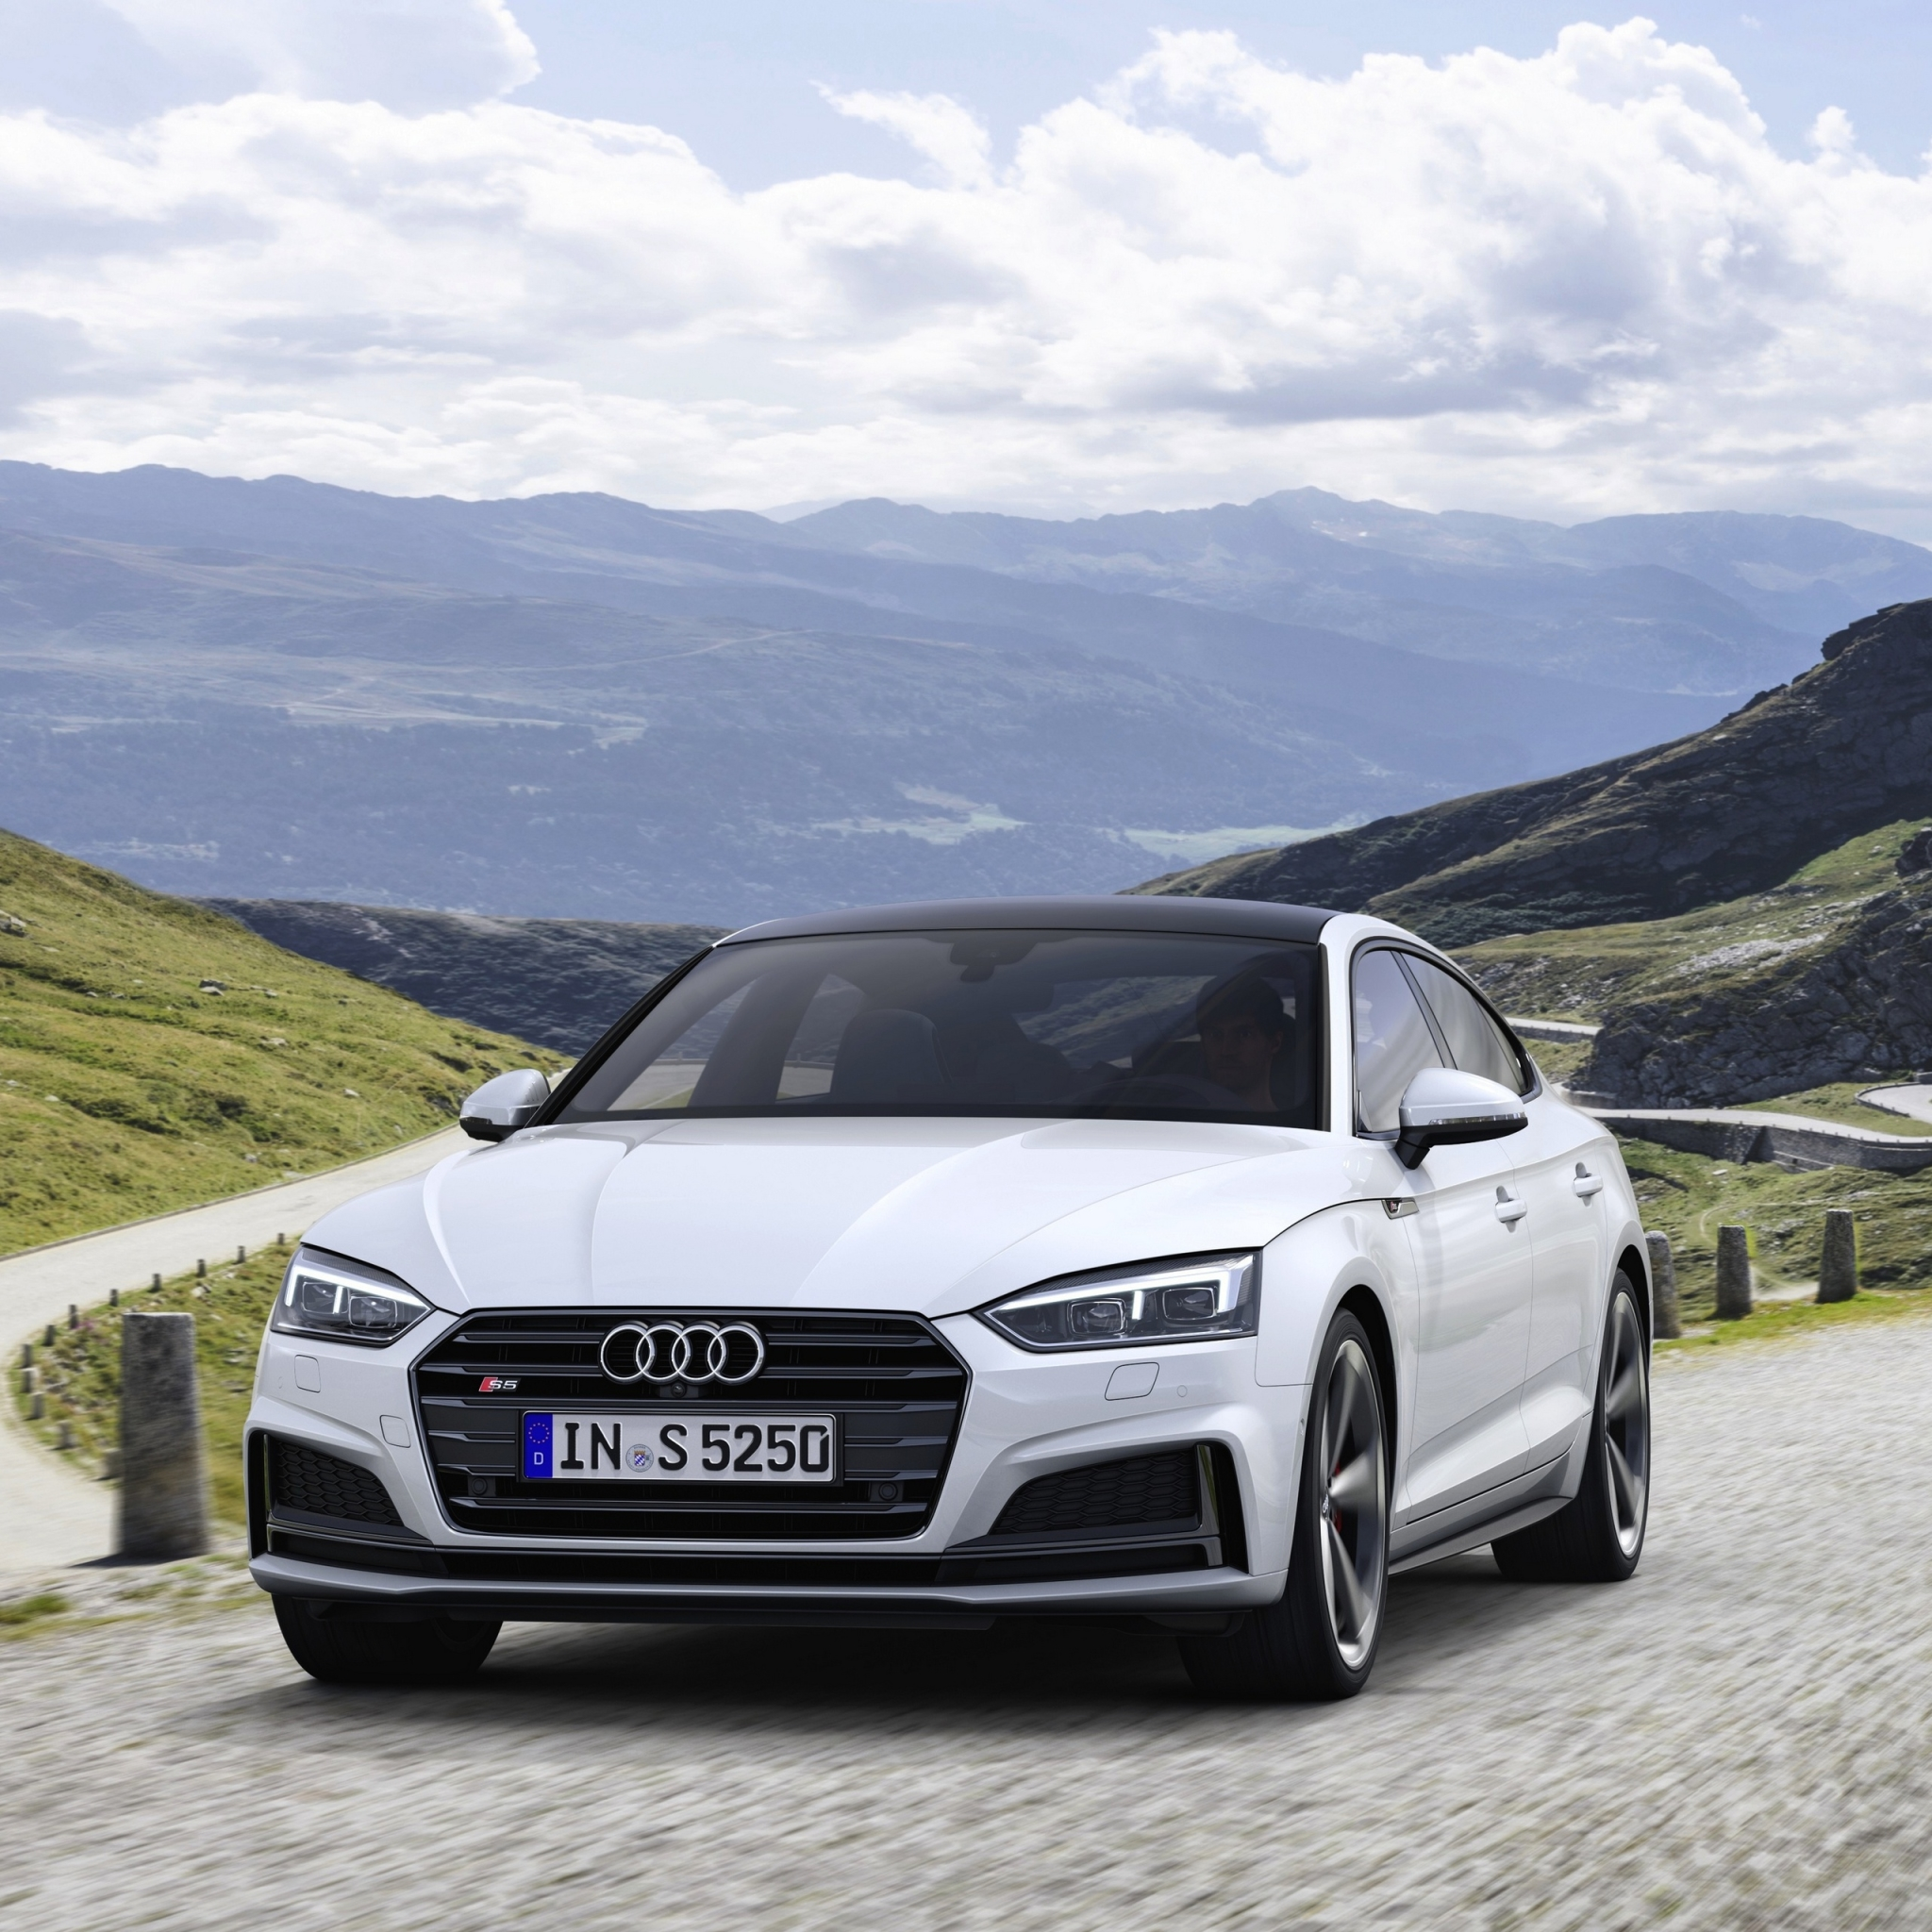 Audi A5 Forum Avatar | Profile Photo - ID: 188222 - Avatar Abyss